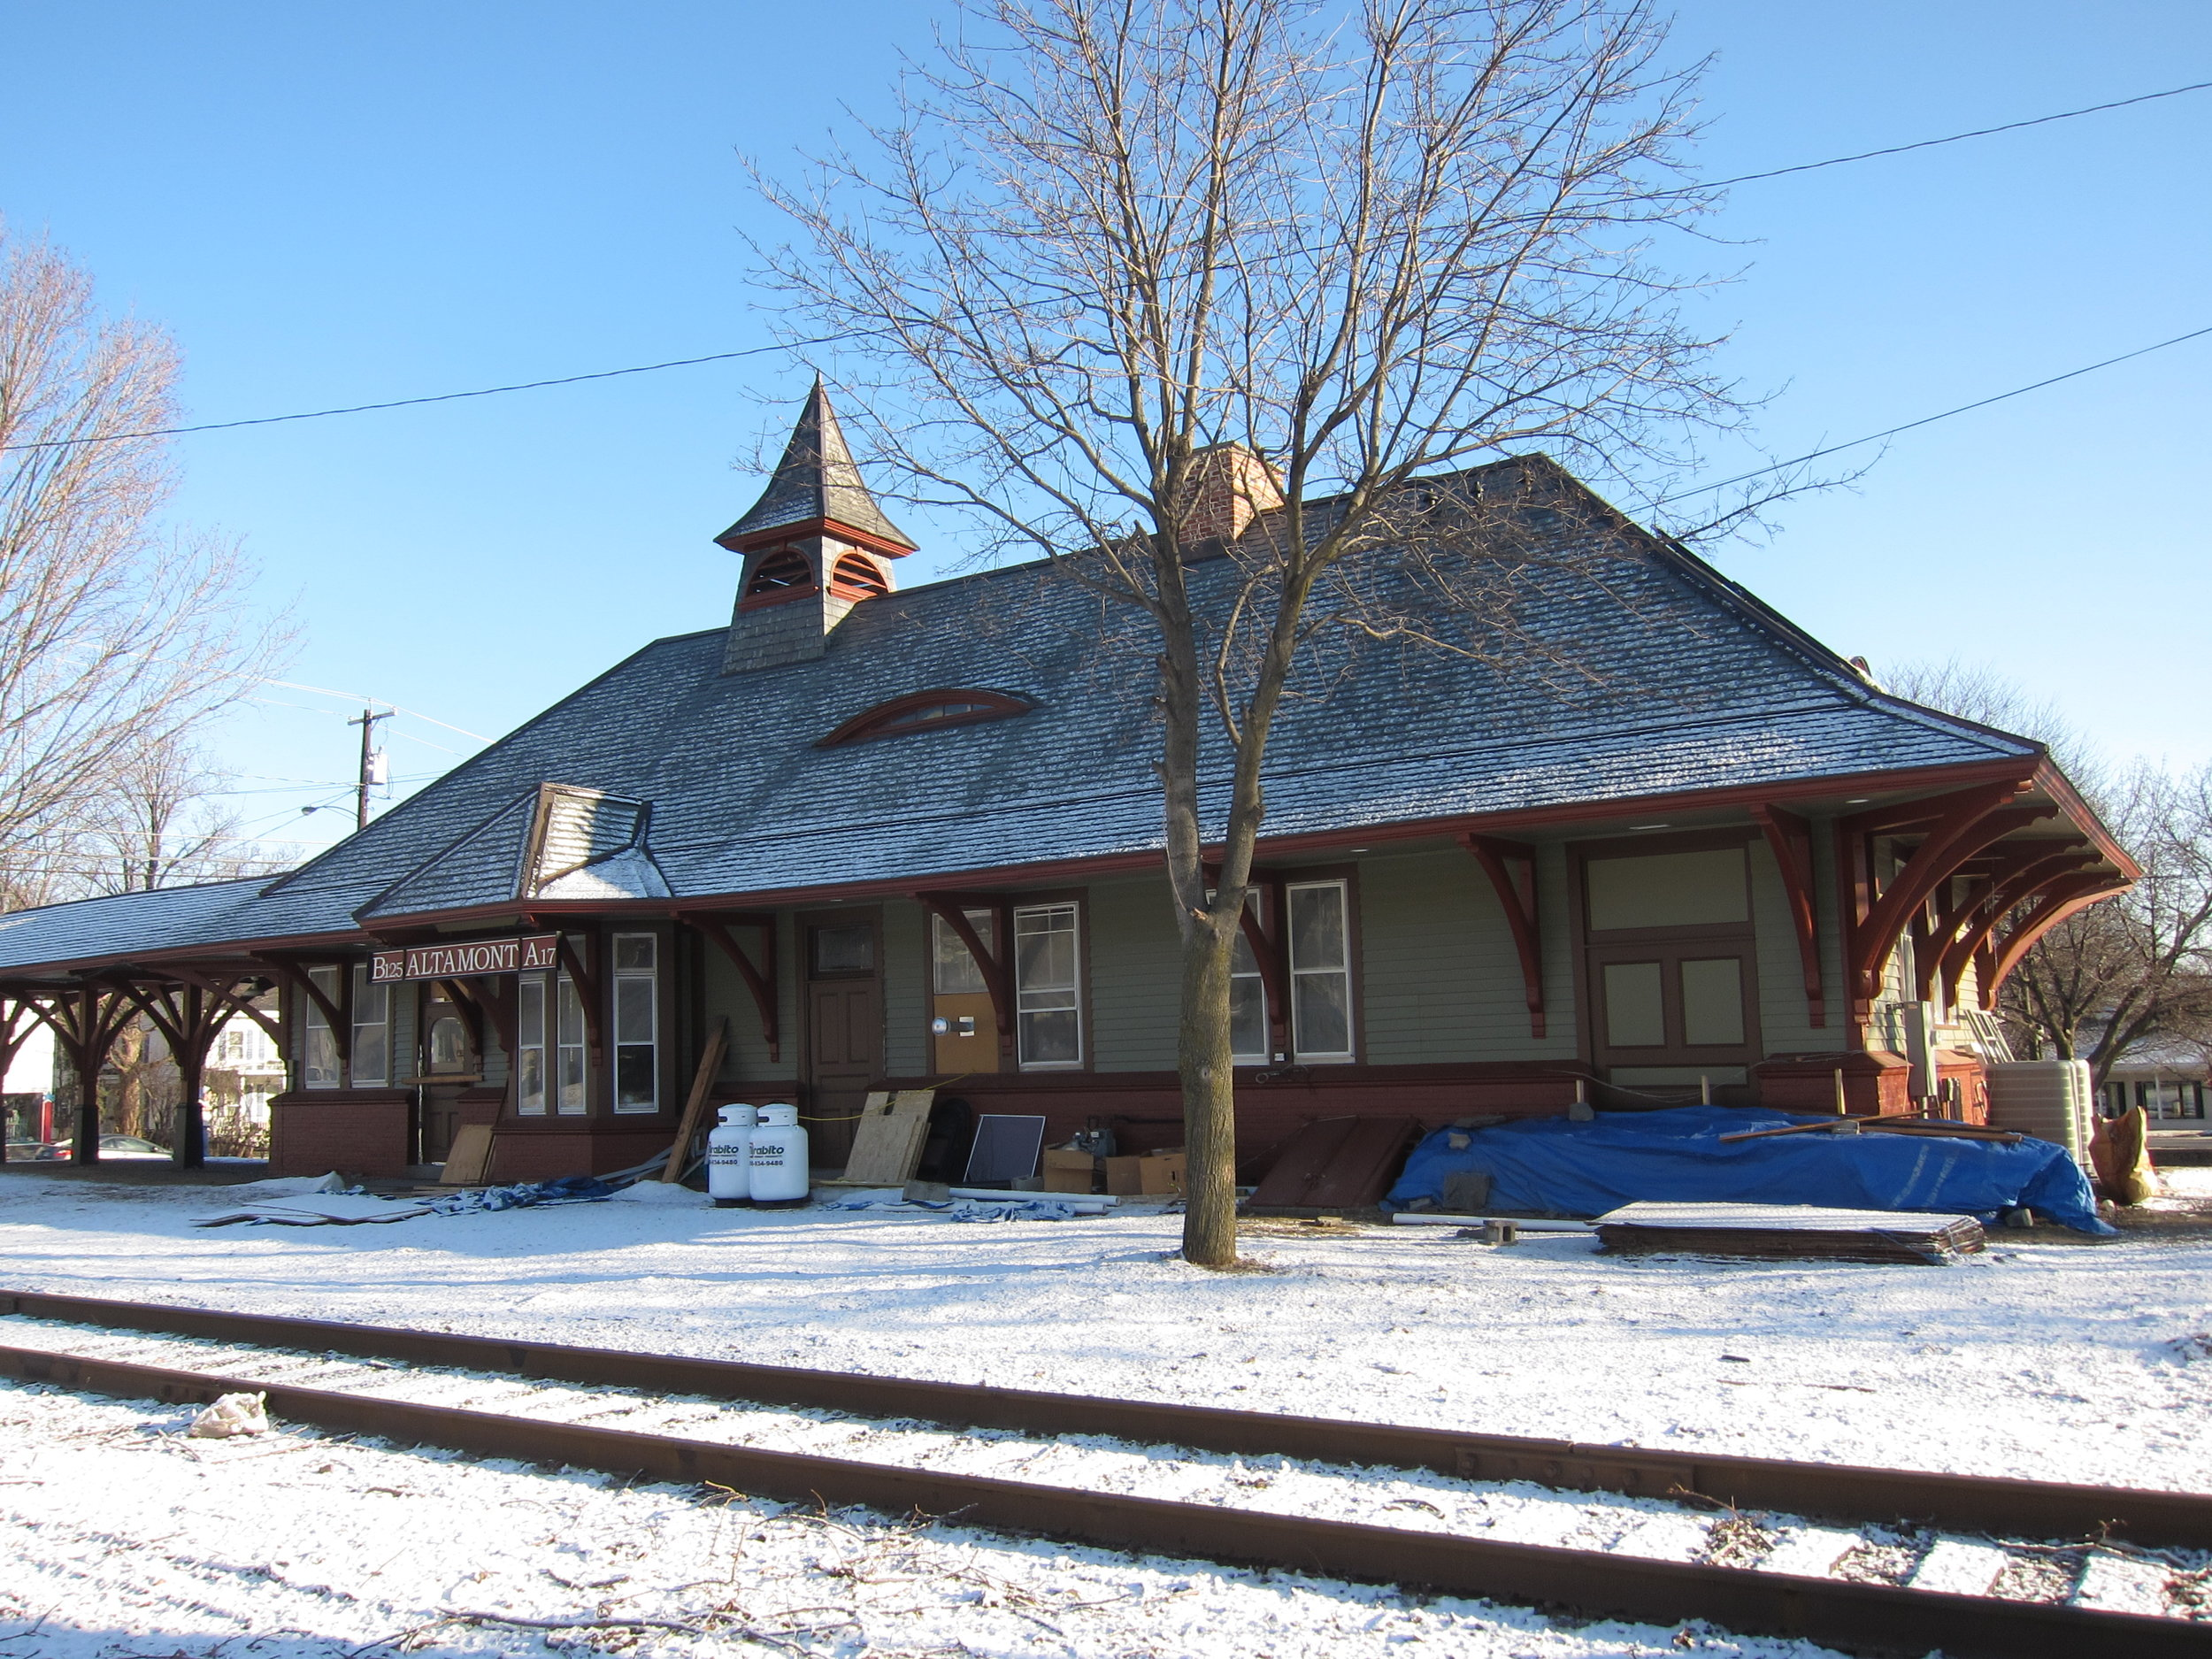 Altamont station on February 19, 2012. It was being renovated at the time, and they even added a new (replica) station sign. Photo by Rudy Garbely.